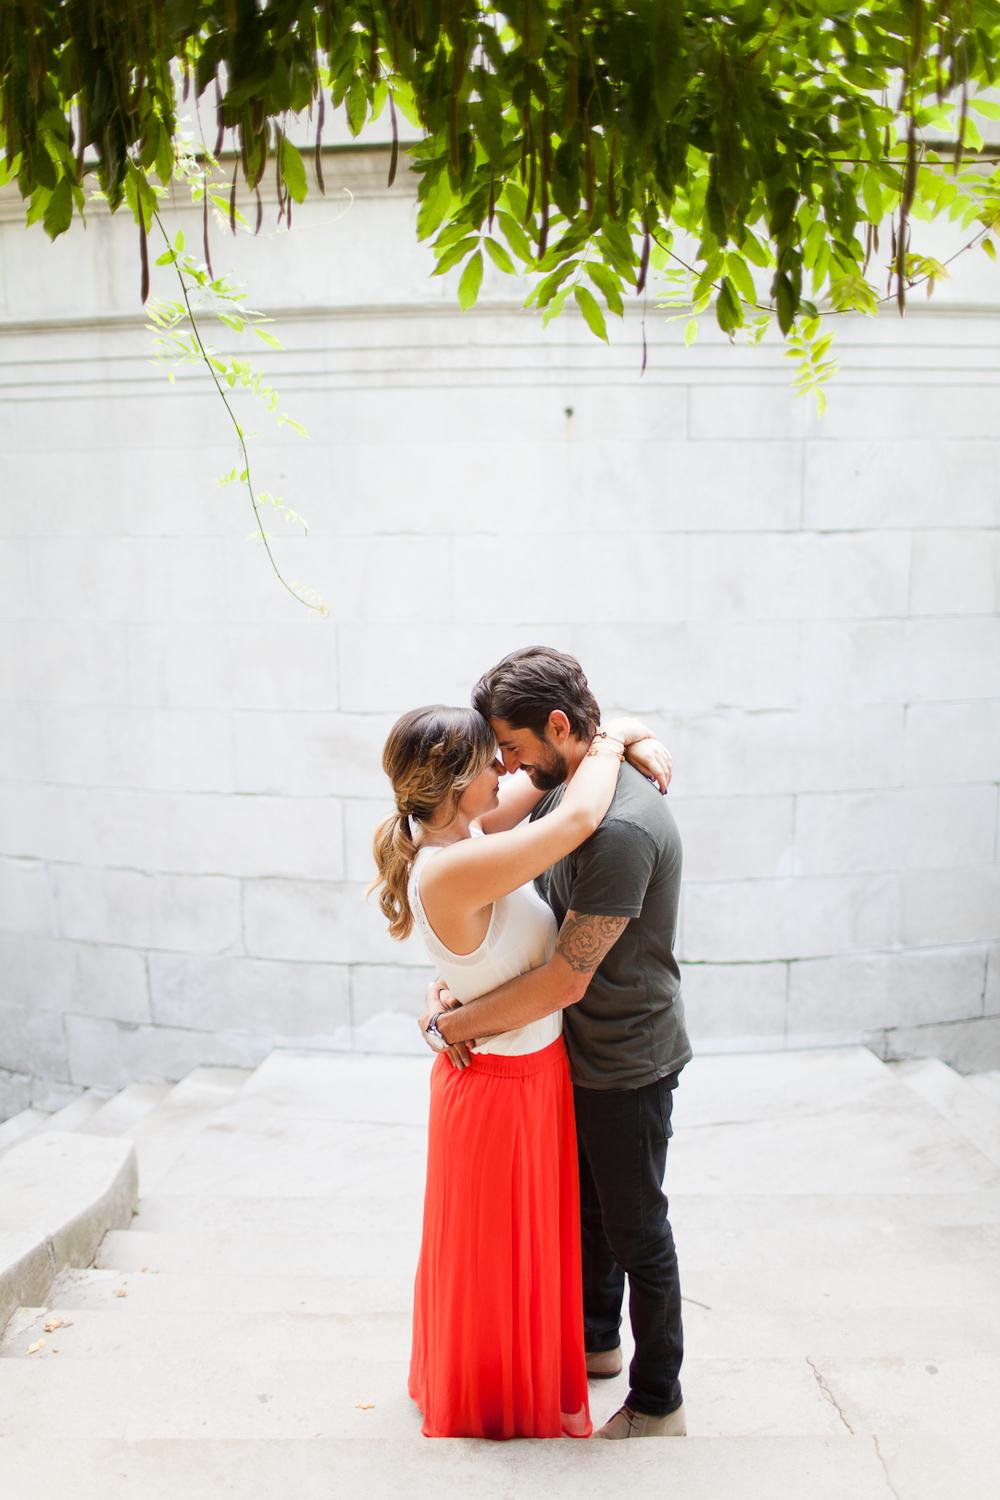 Melissa Kruse Photography - Eileen & Kenny Engagement Photos-107.jpg